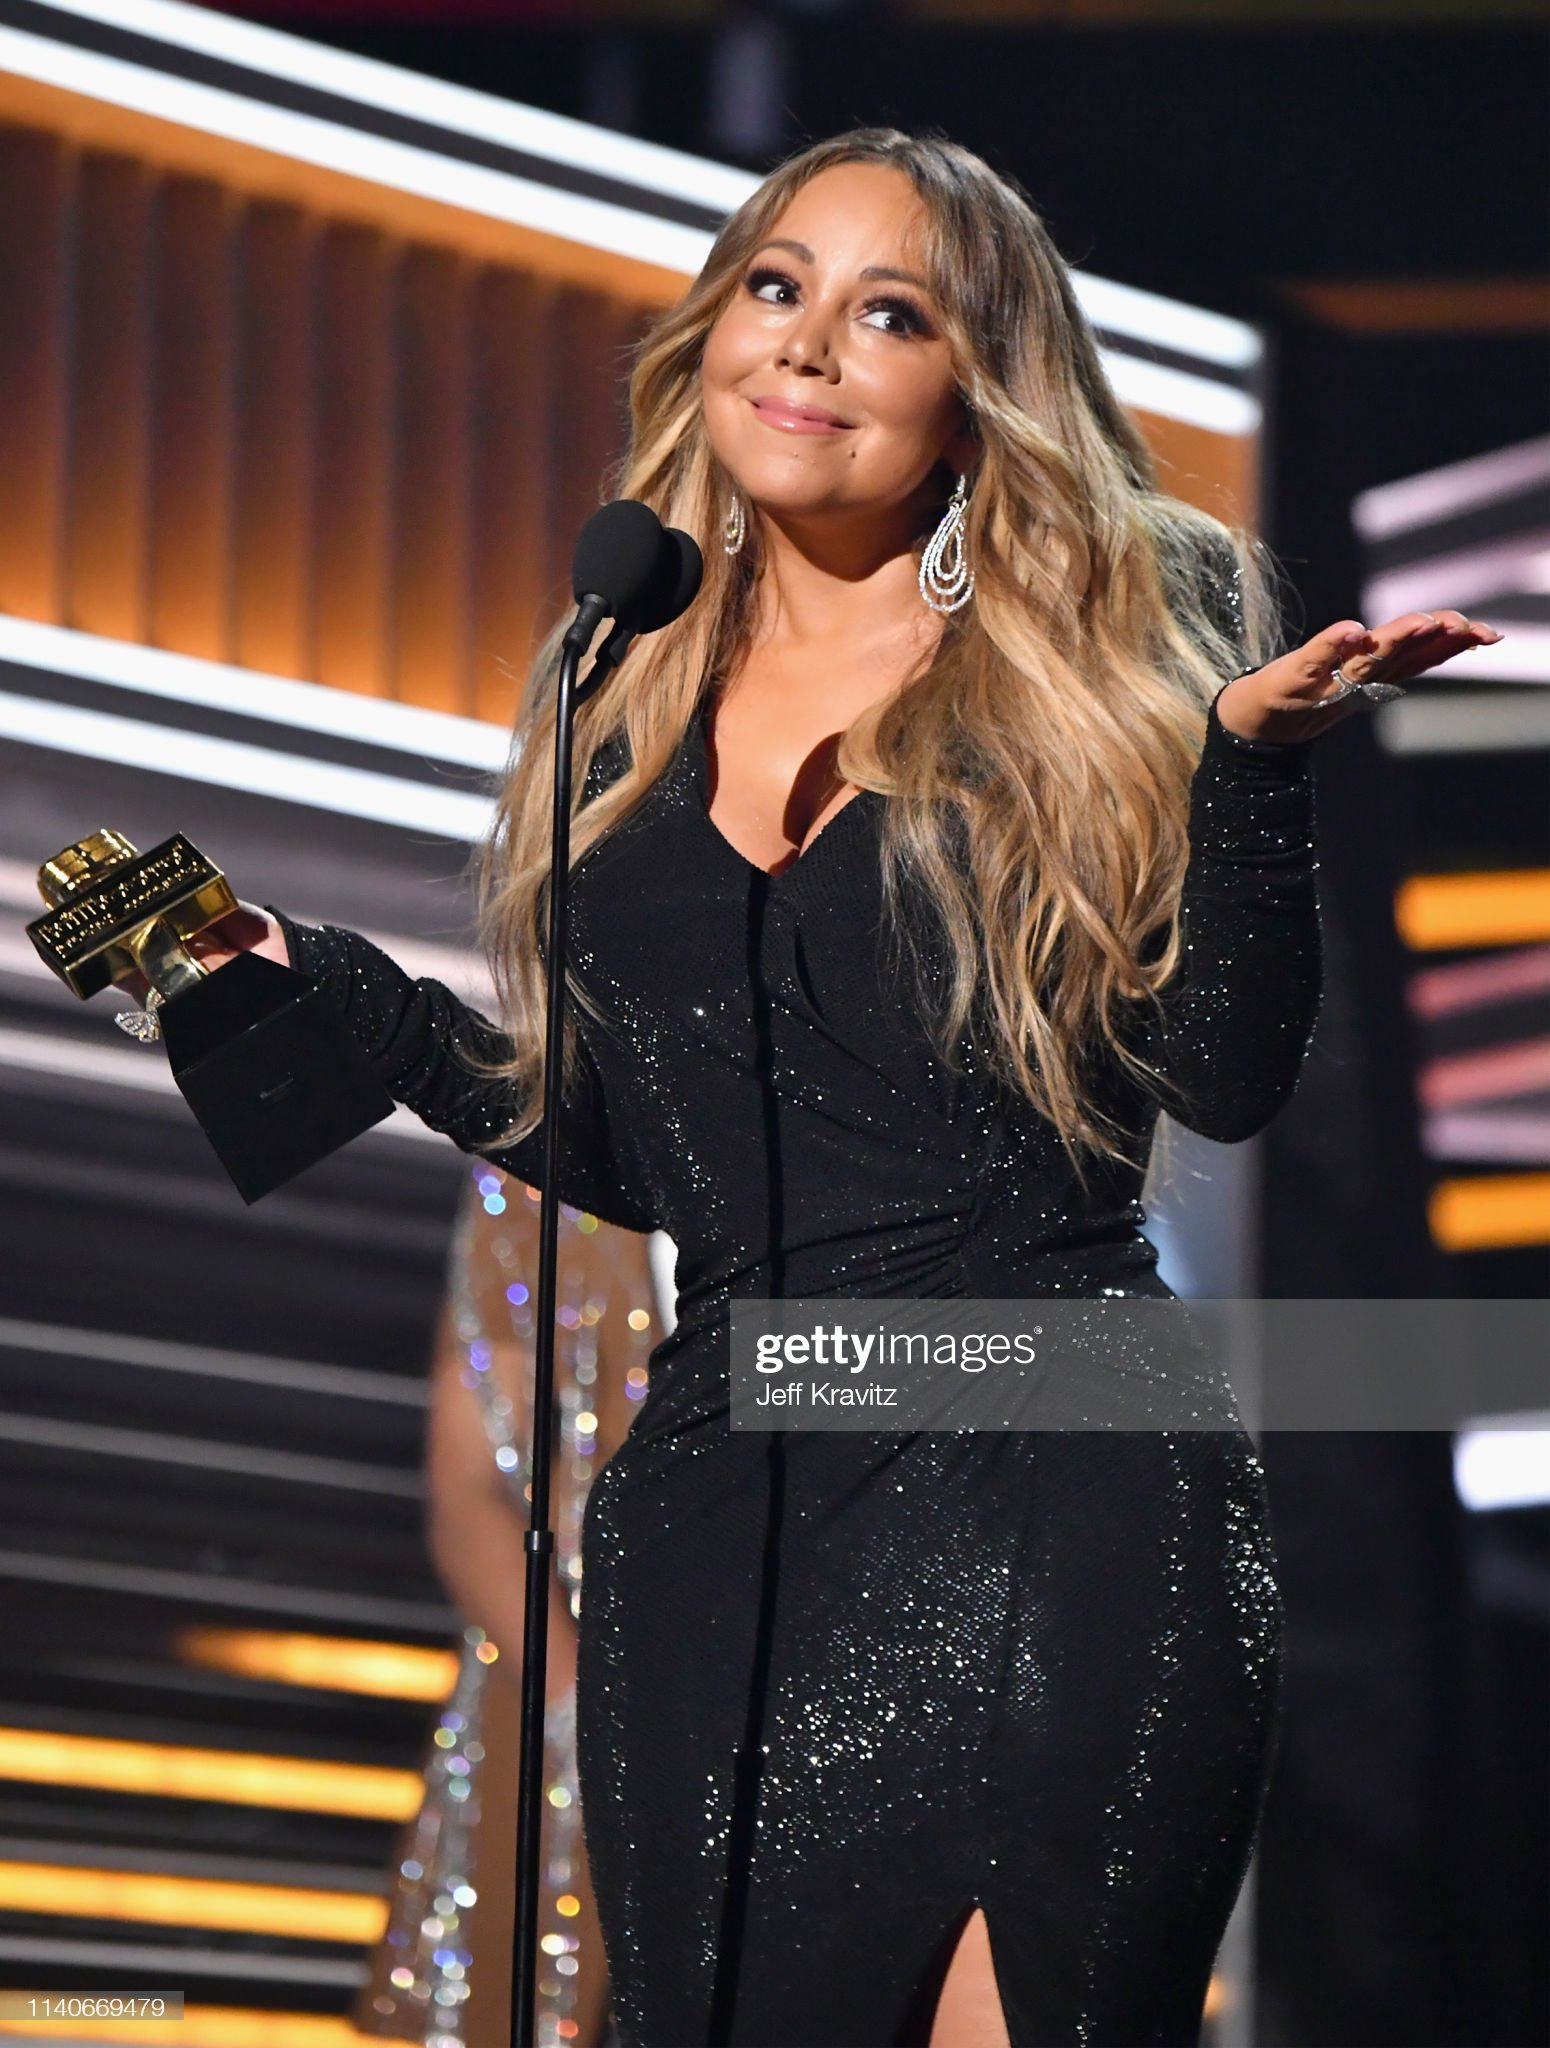 honoree-mariah-carey-accepts-the-icon-aw